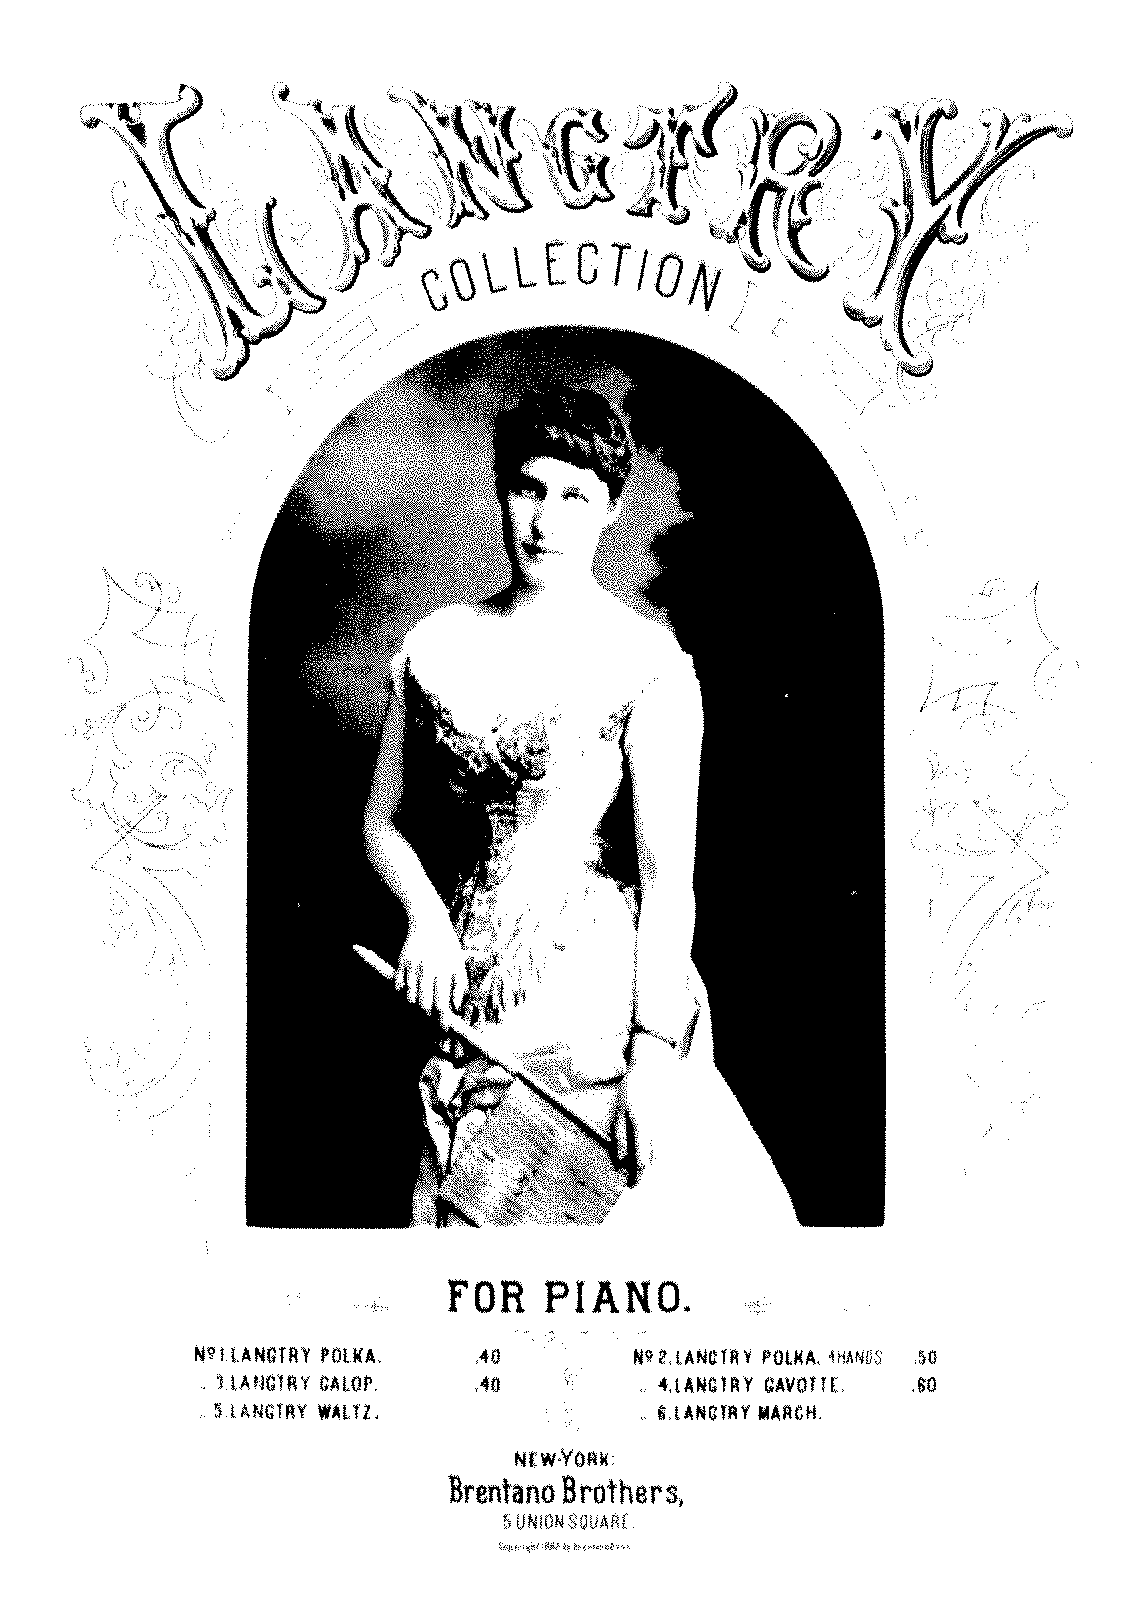 PMLP616470-Maylath - Langtry Collection no 2 Langtry Polka - 4H.pdf